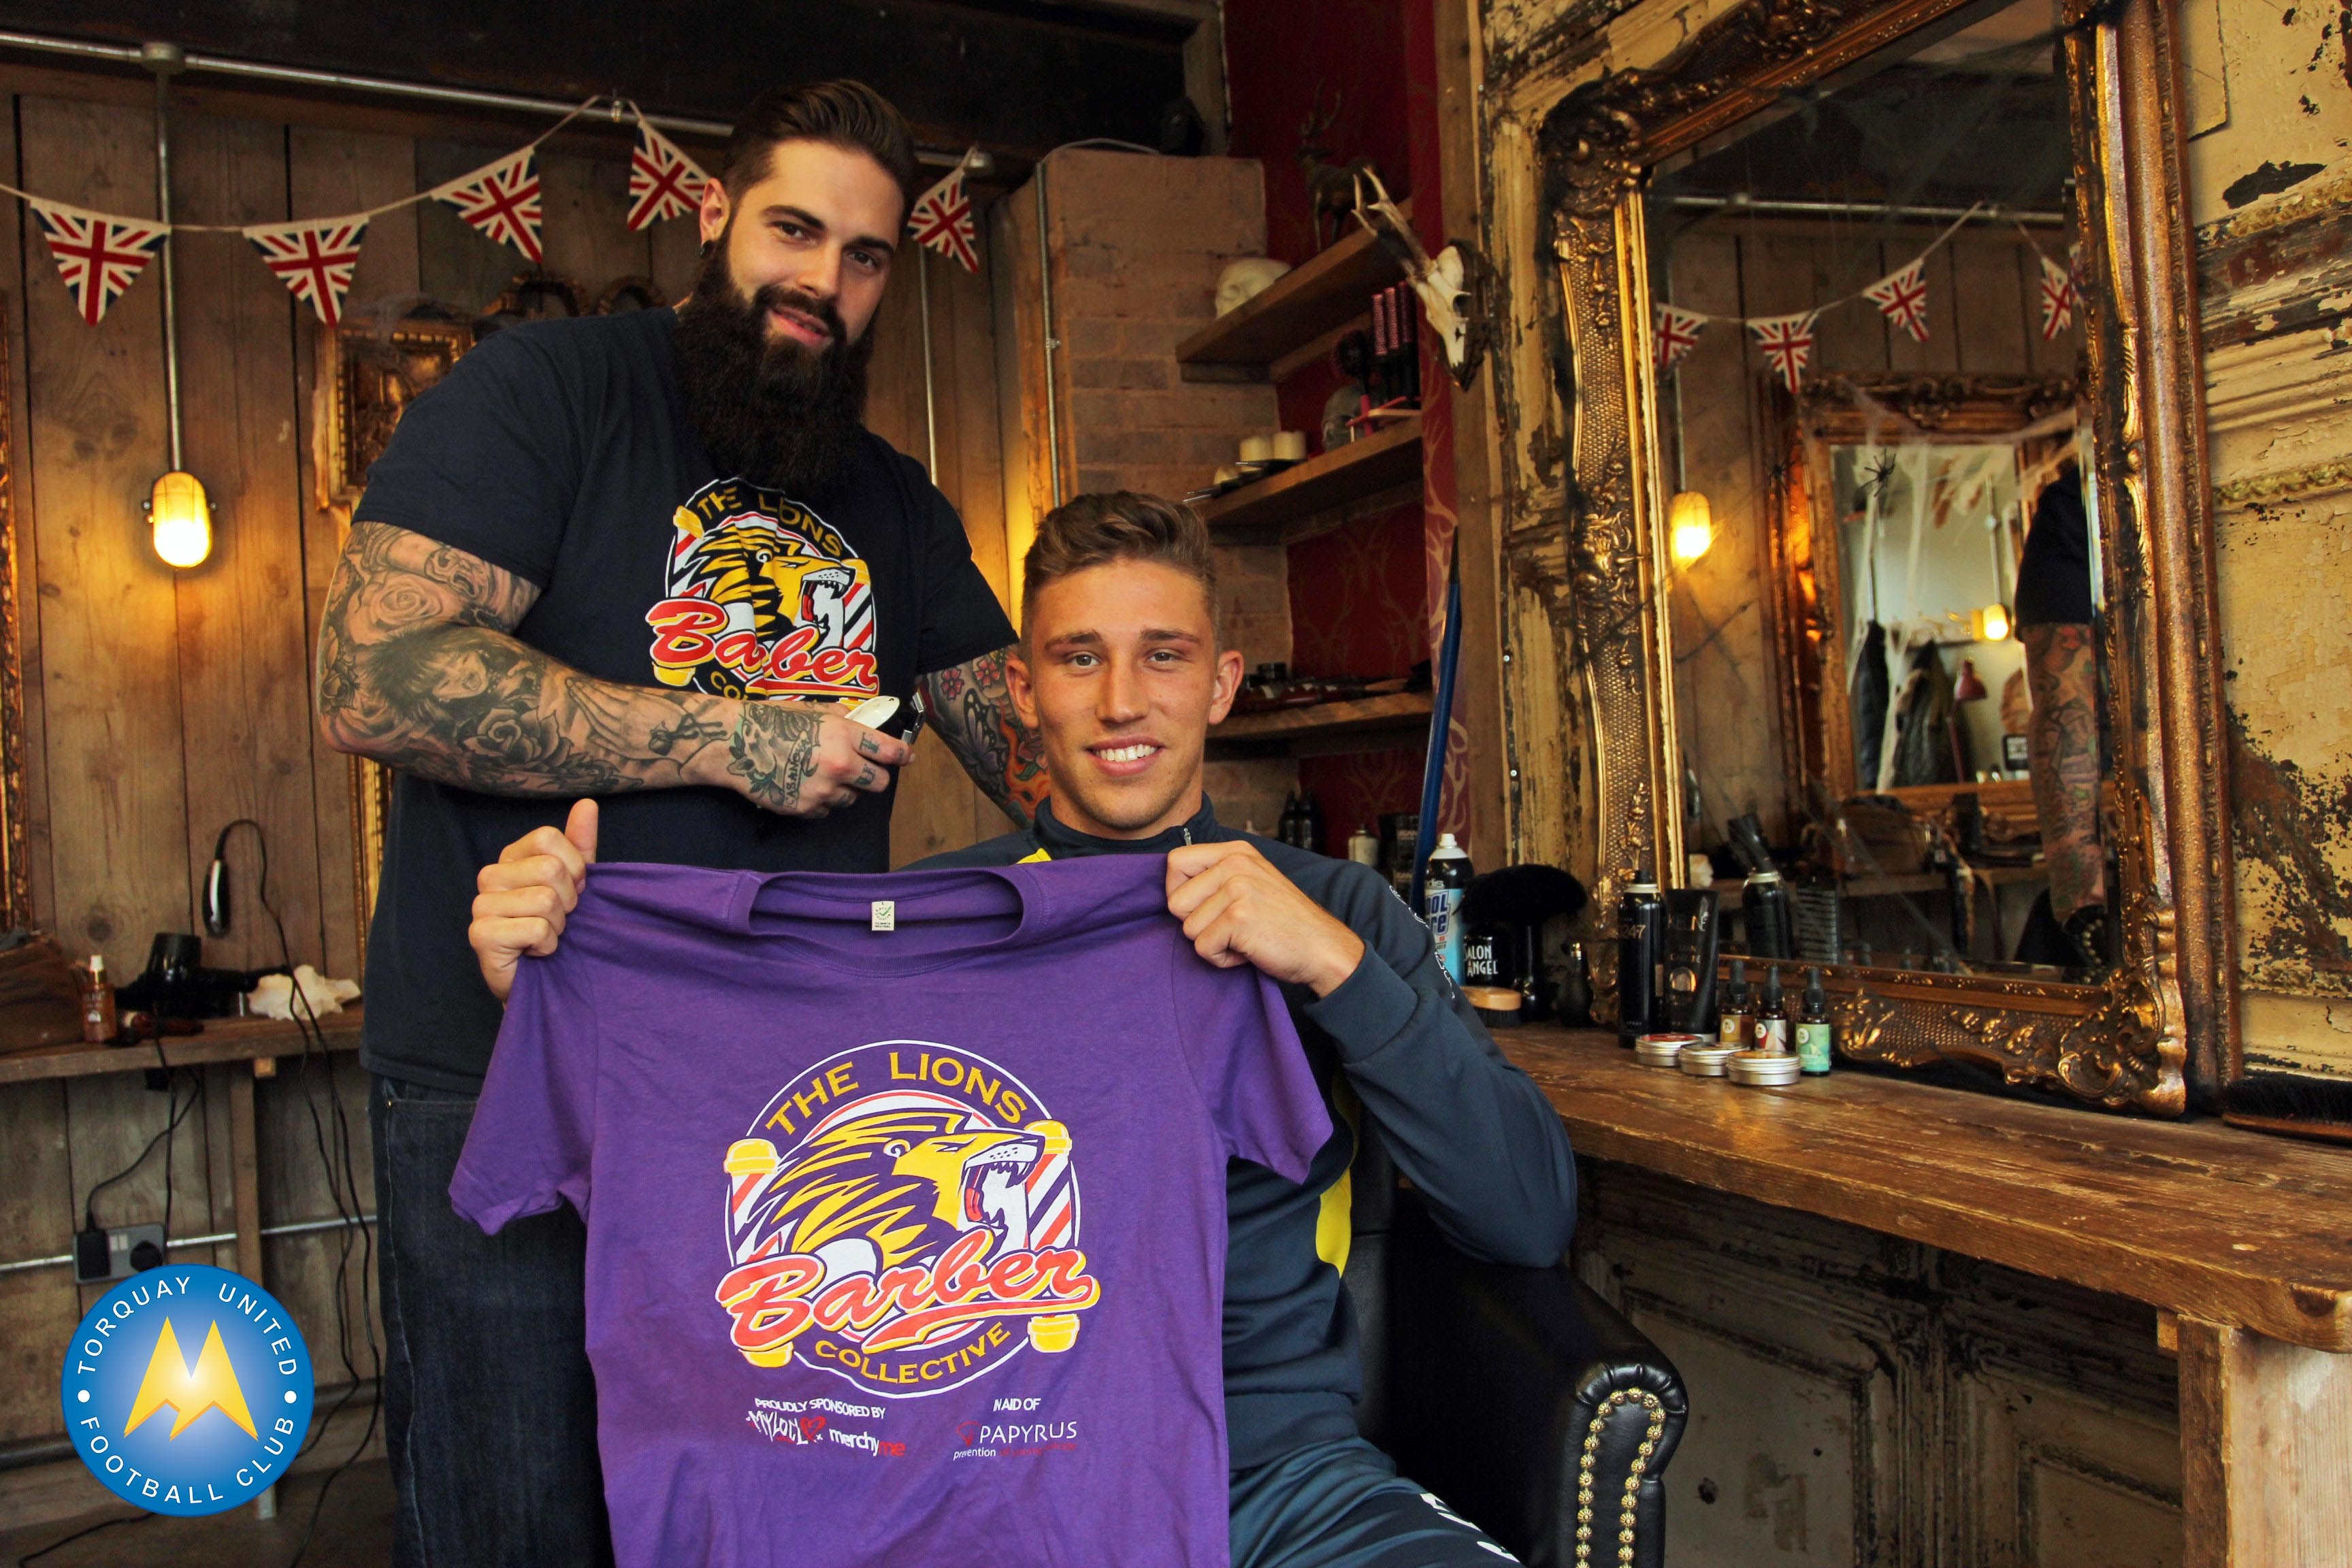 lions barber collective